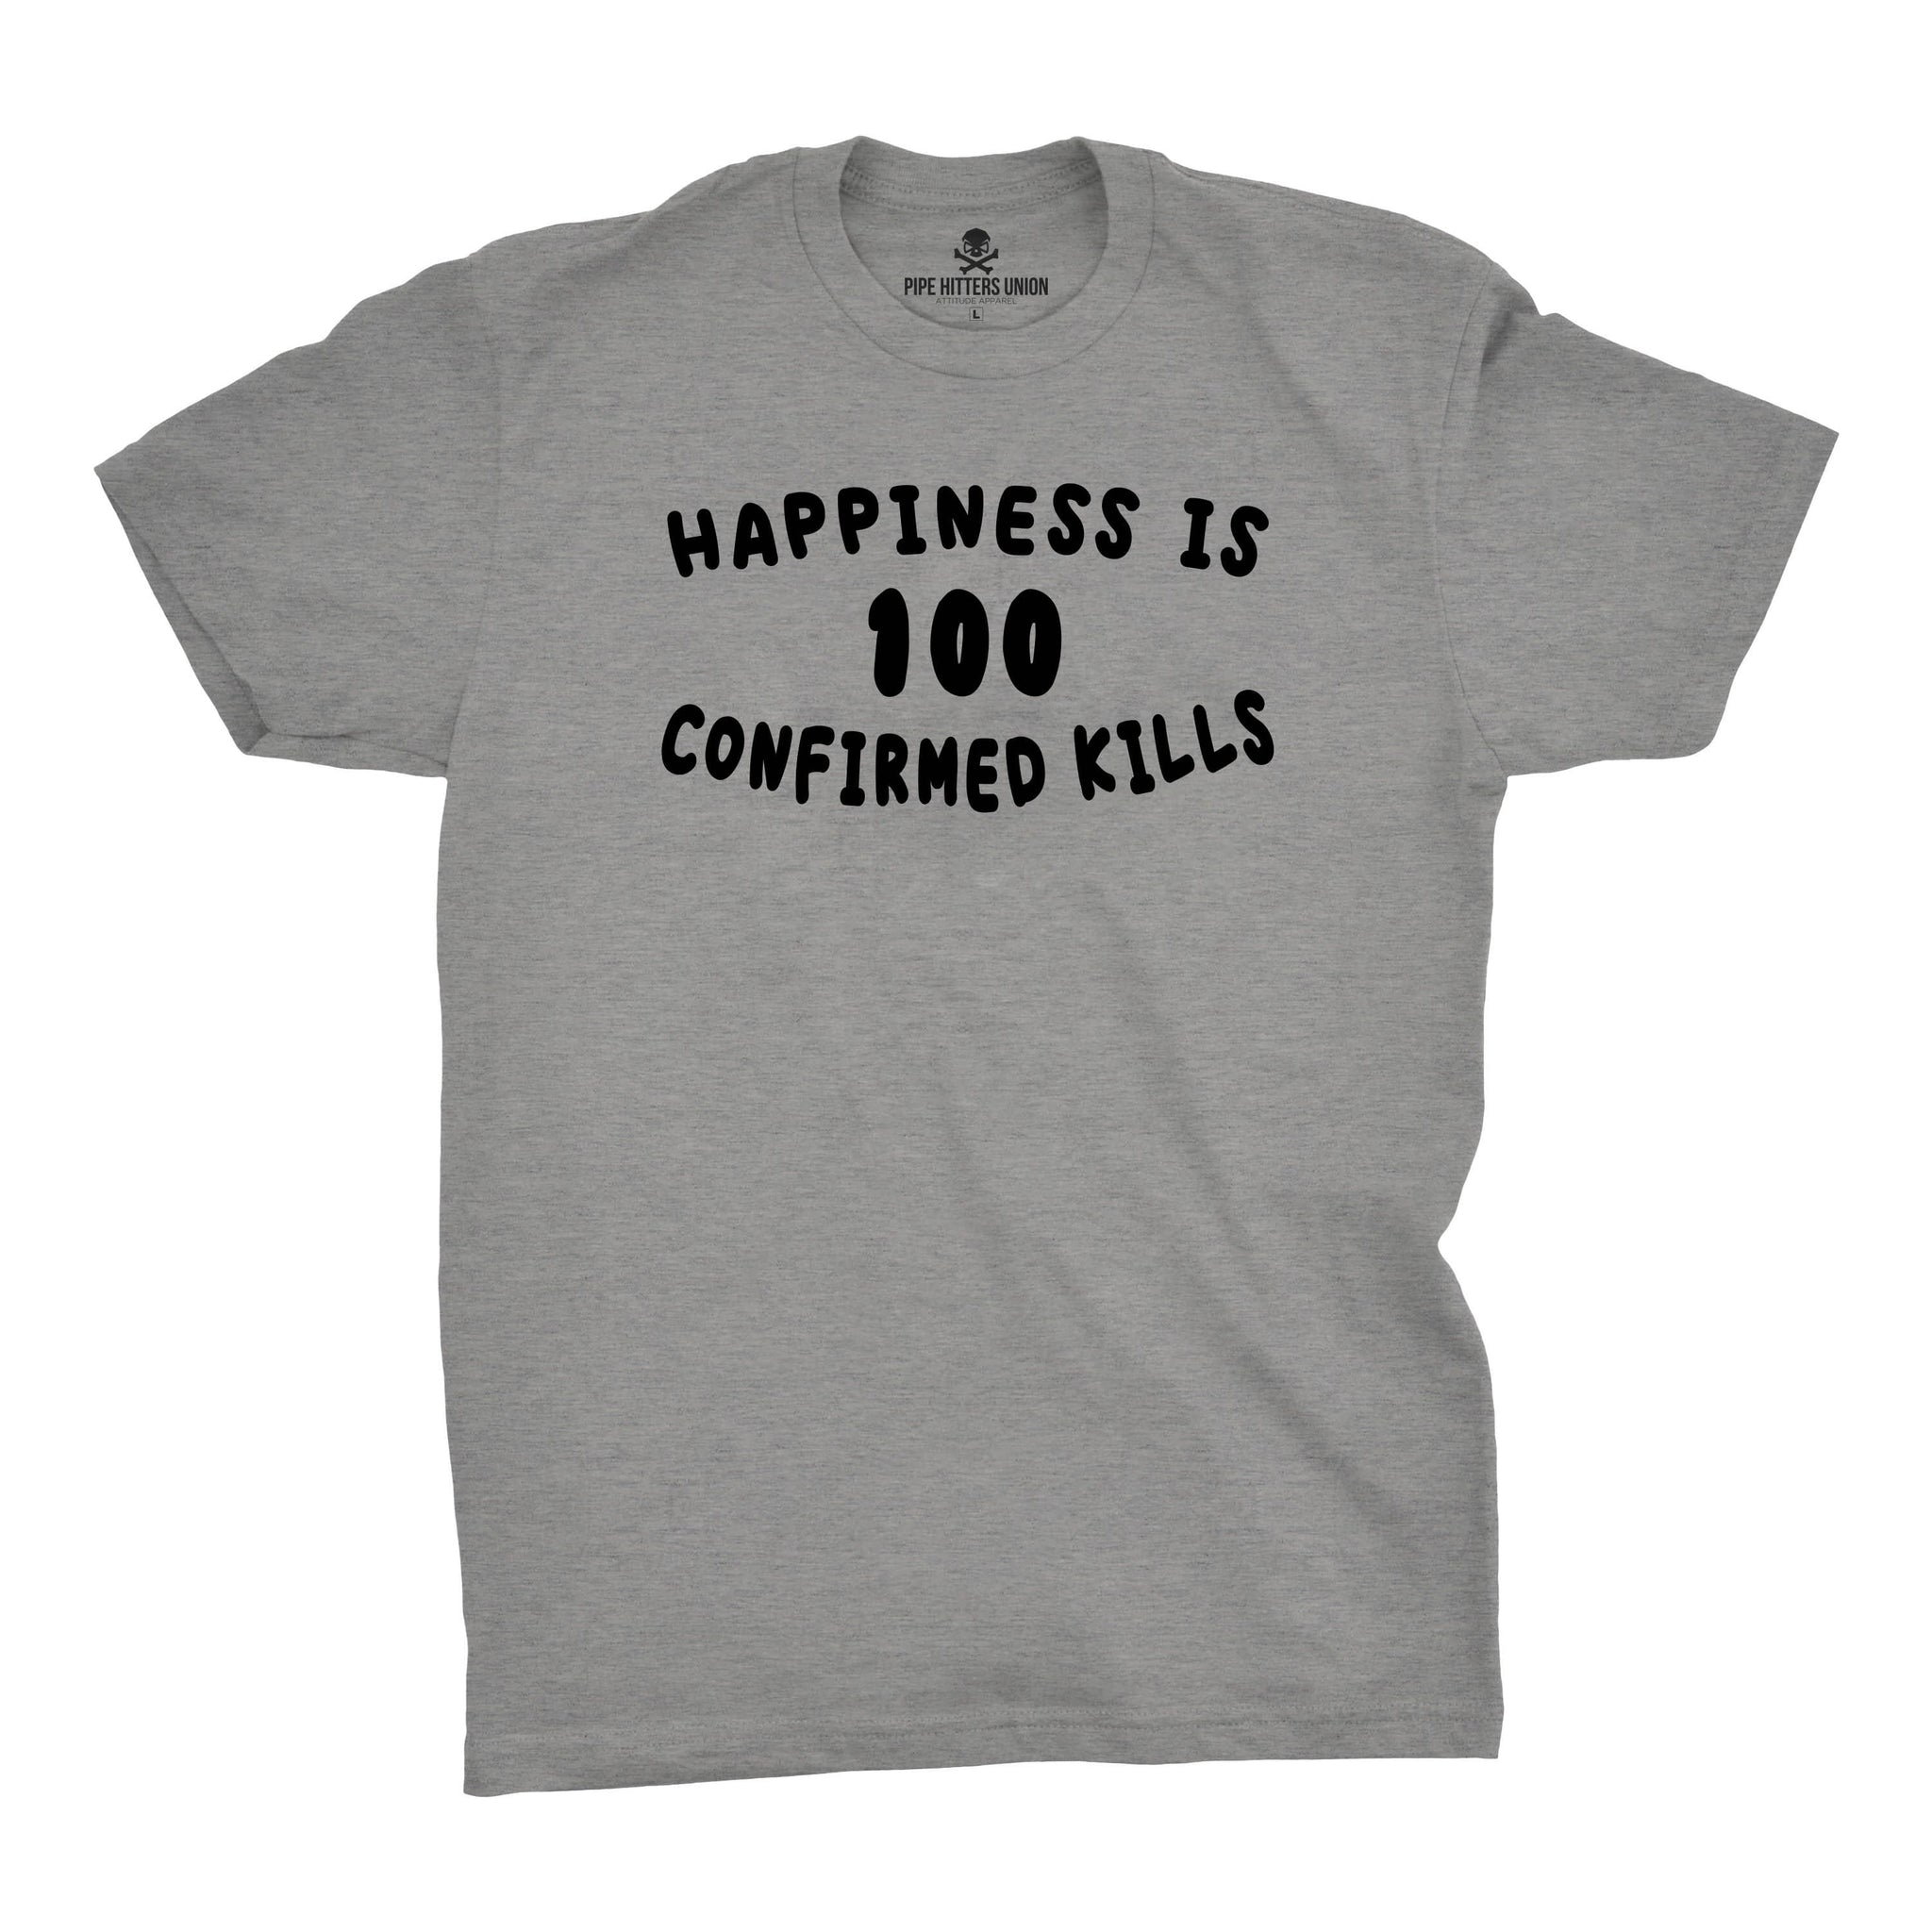 Happiness is 100 Confirmed Kills - Grey - T-Shirts - Pipe Hitters Union